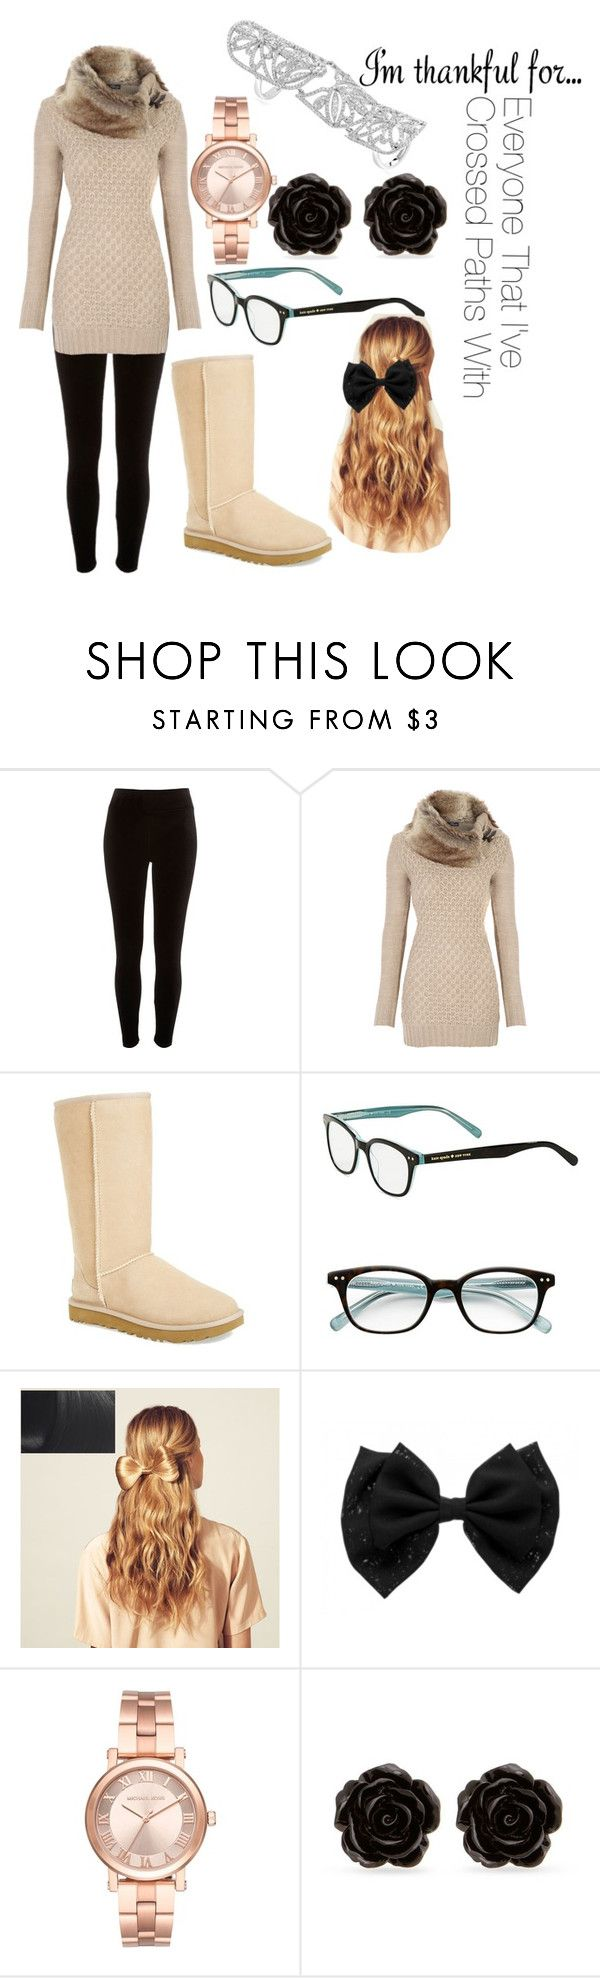 """""""Making The Turkey"""" by angel-huntress on Polyvore featuring River Island, UGG, Kate Spade, Hershesons, Michael Kors, Erica Lyons, Odelia and imthankfulfor"""